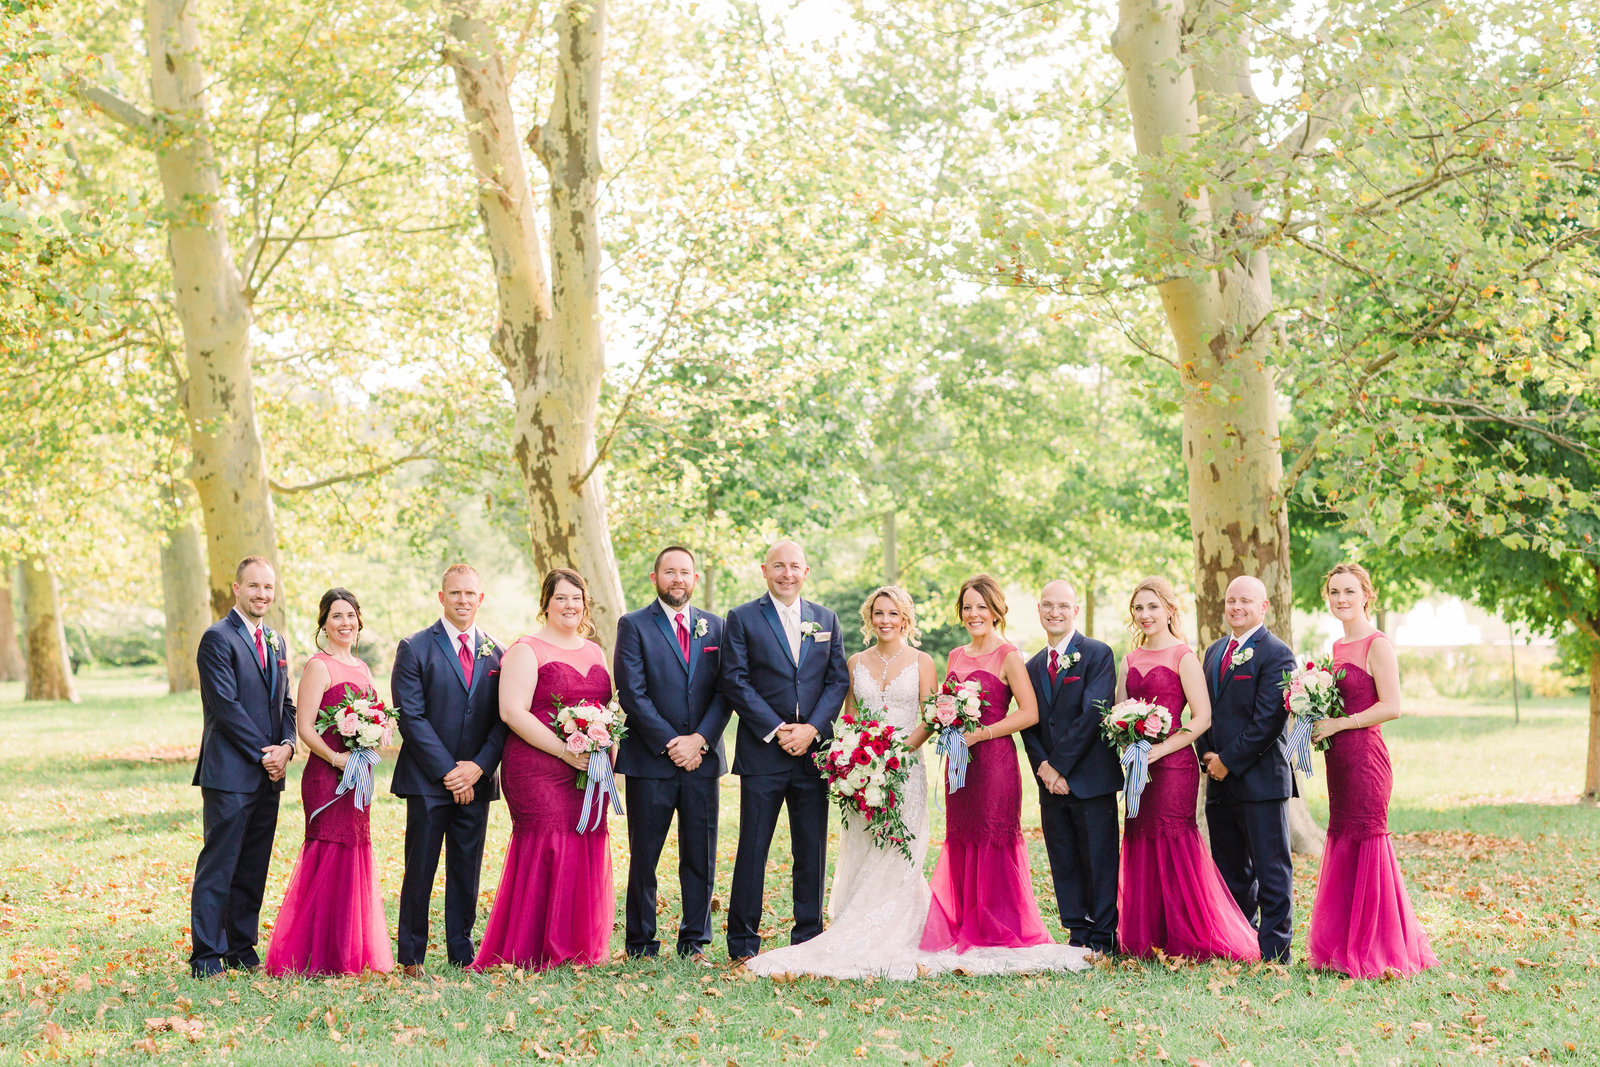 This wedding party stands in a open area of bright green on a summer day, the bridesmaid's burgundy dresses pop with color